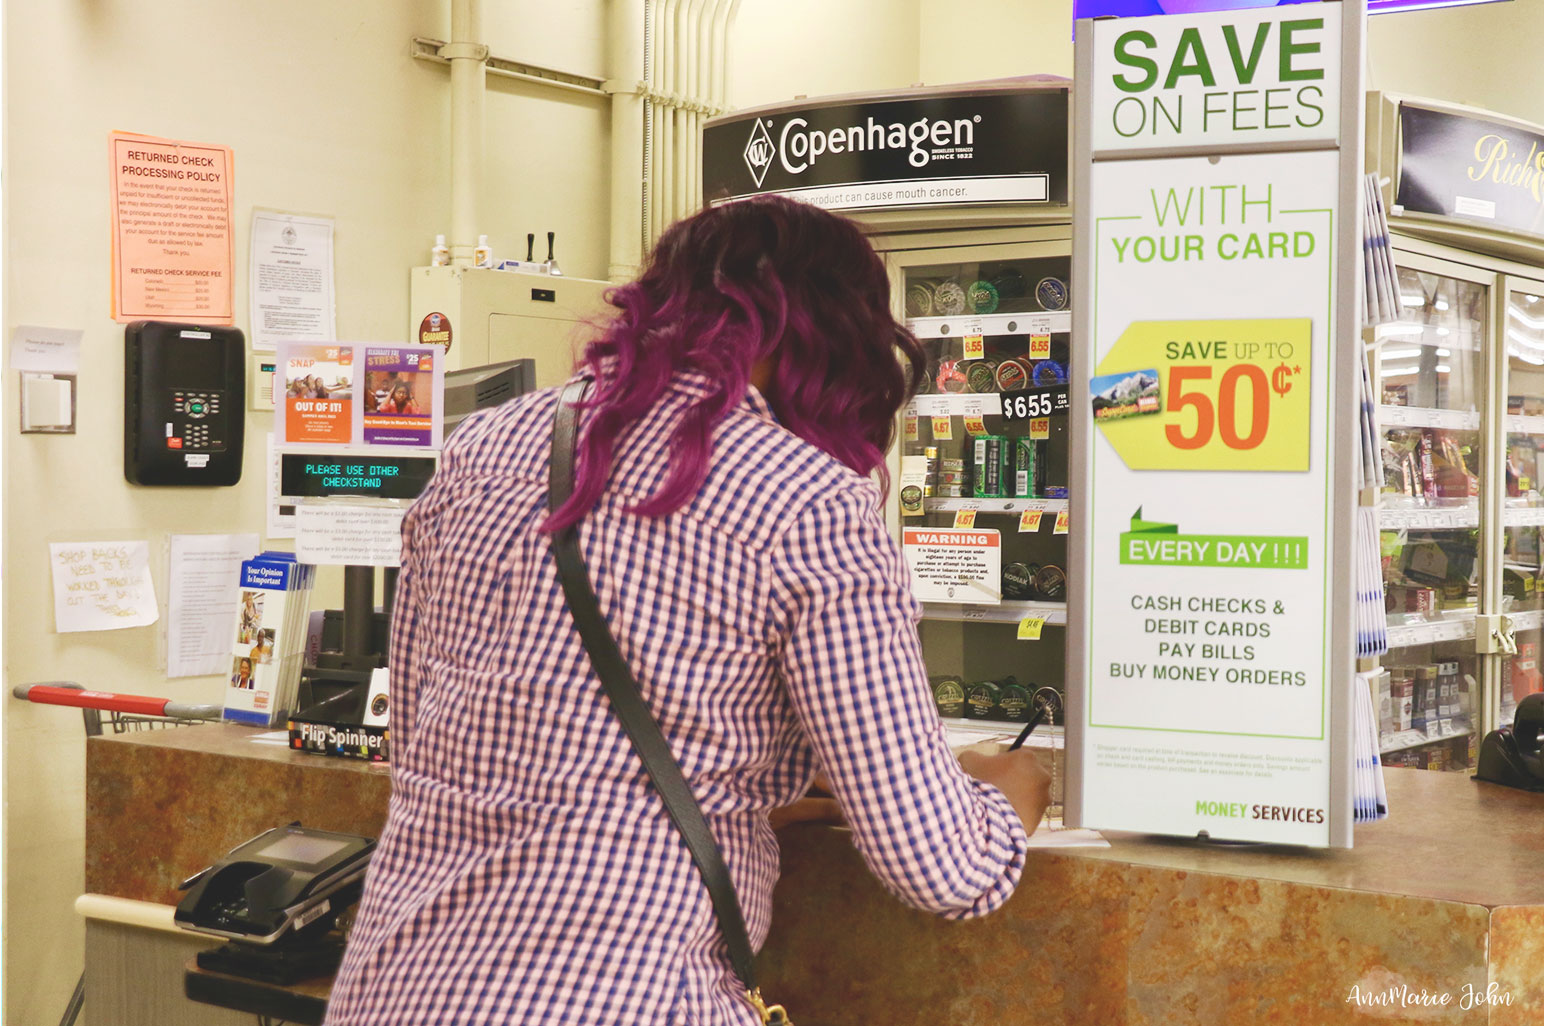 King soopers money services new discount program allows customers to save up to 0 50 on check and debit card cashing bill payments and money orders when